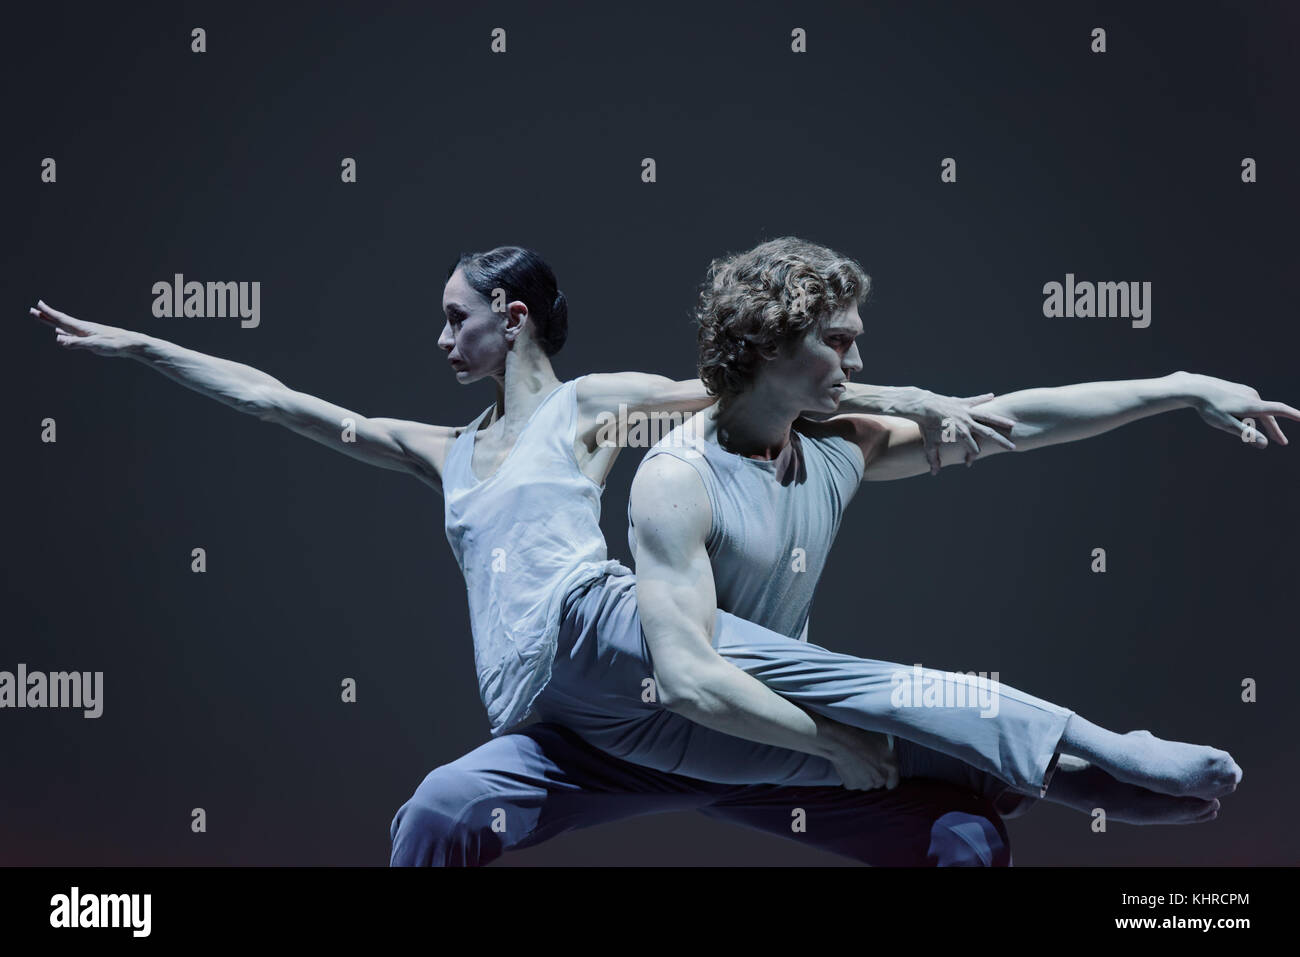 St. Petersburg, Russia - November 16, 2017: Ballet dancers Lucia Lacarra and Marlon Dino perform during gala concert - Stock Image